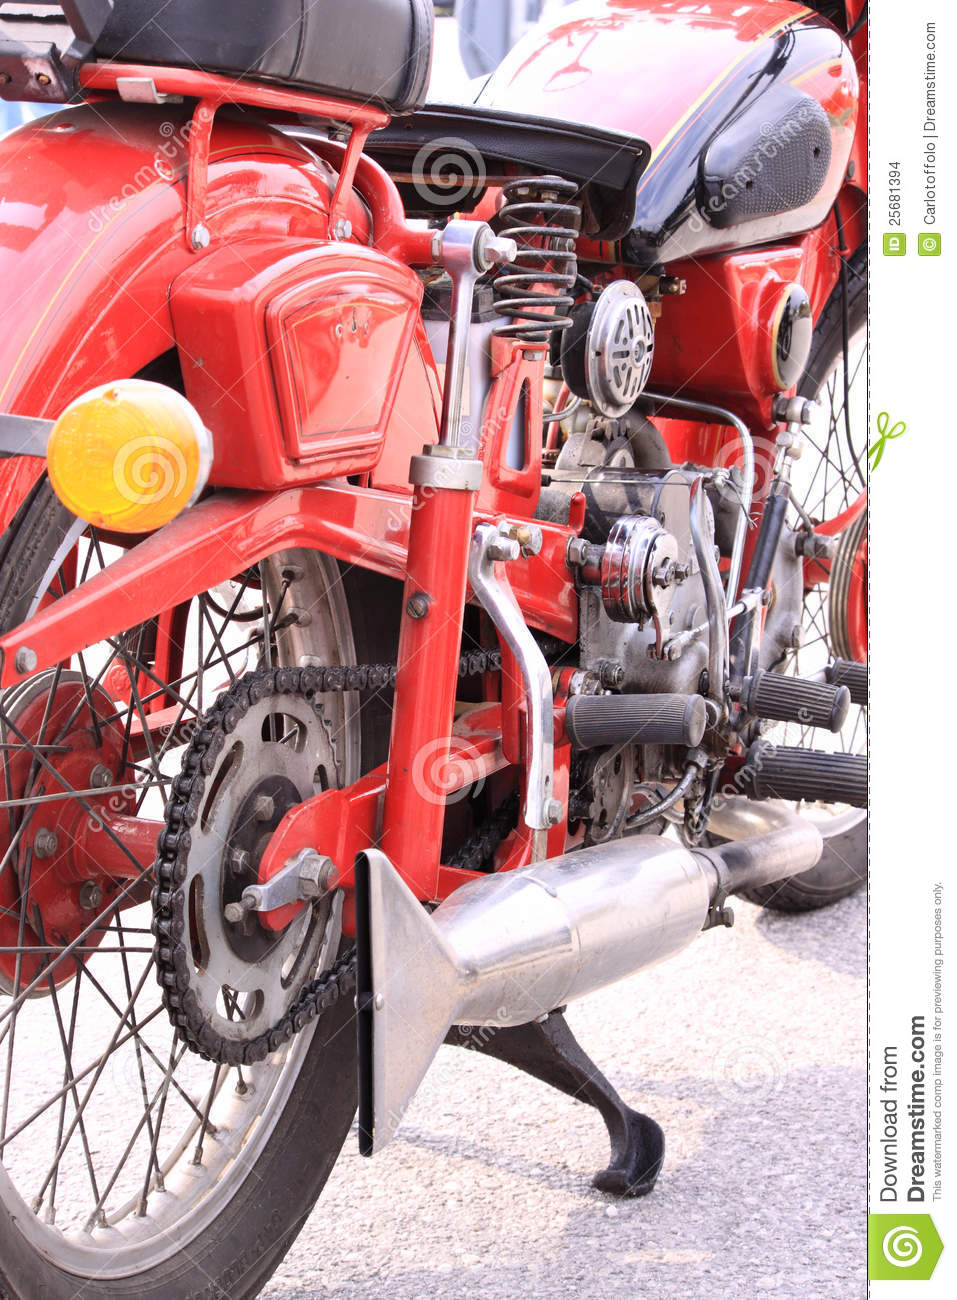 - old-italian-motorcycle-25681394